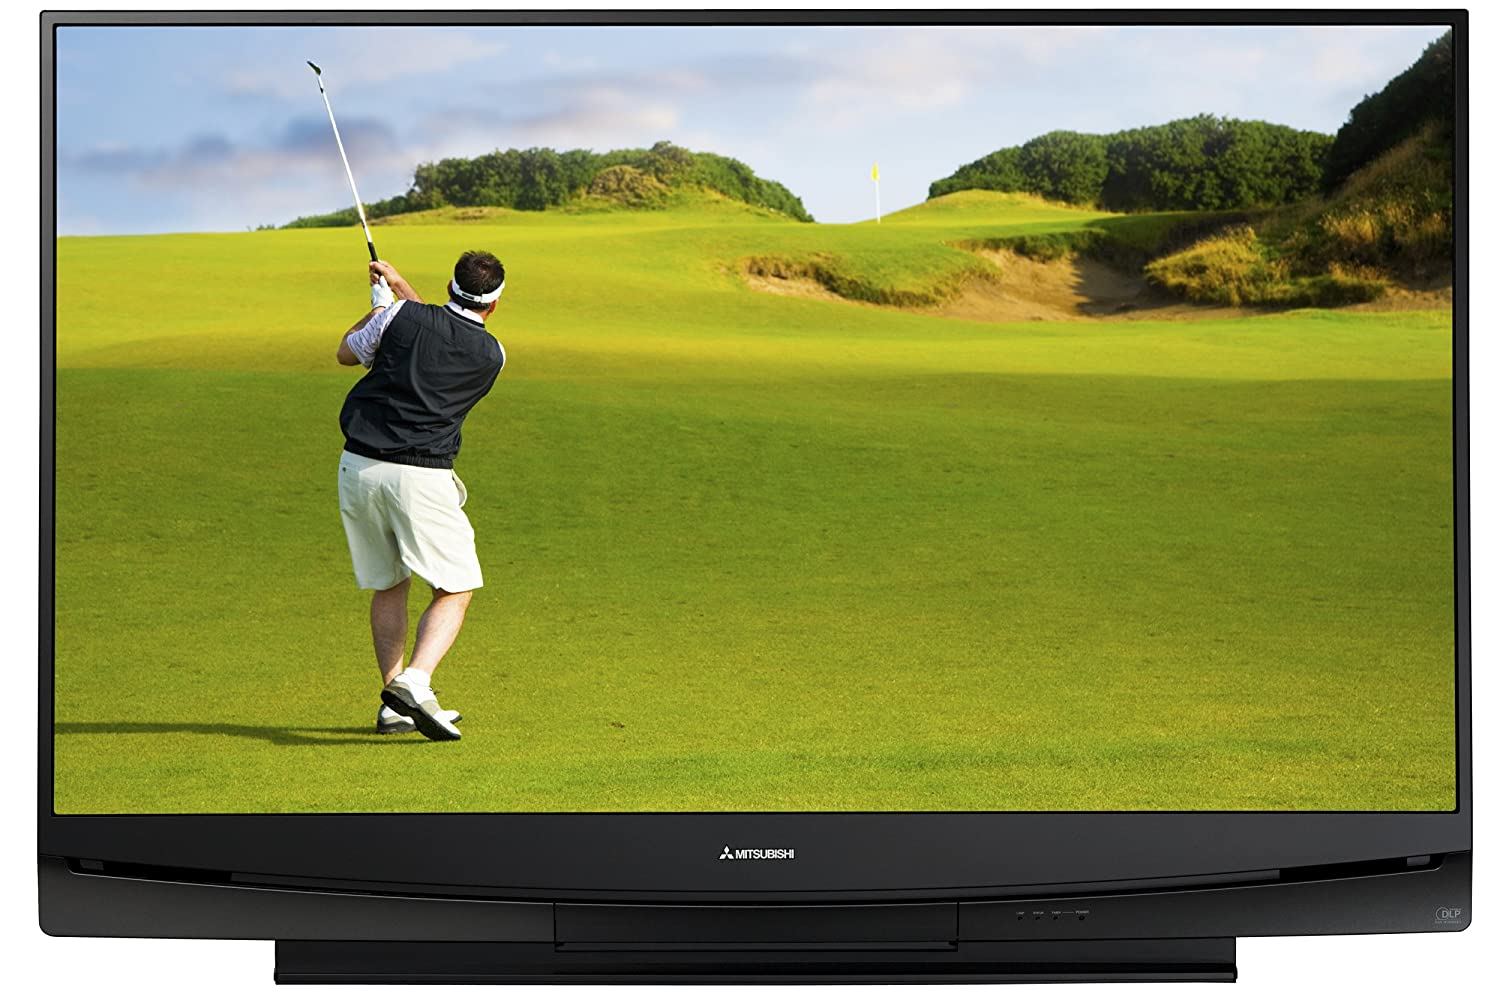 Amazon.com: Mitsubishi WD-60735 60-Inch 1080p DLP HDTV (2008 Model